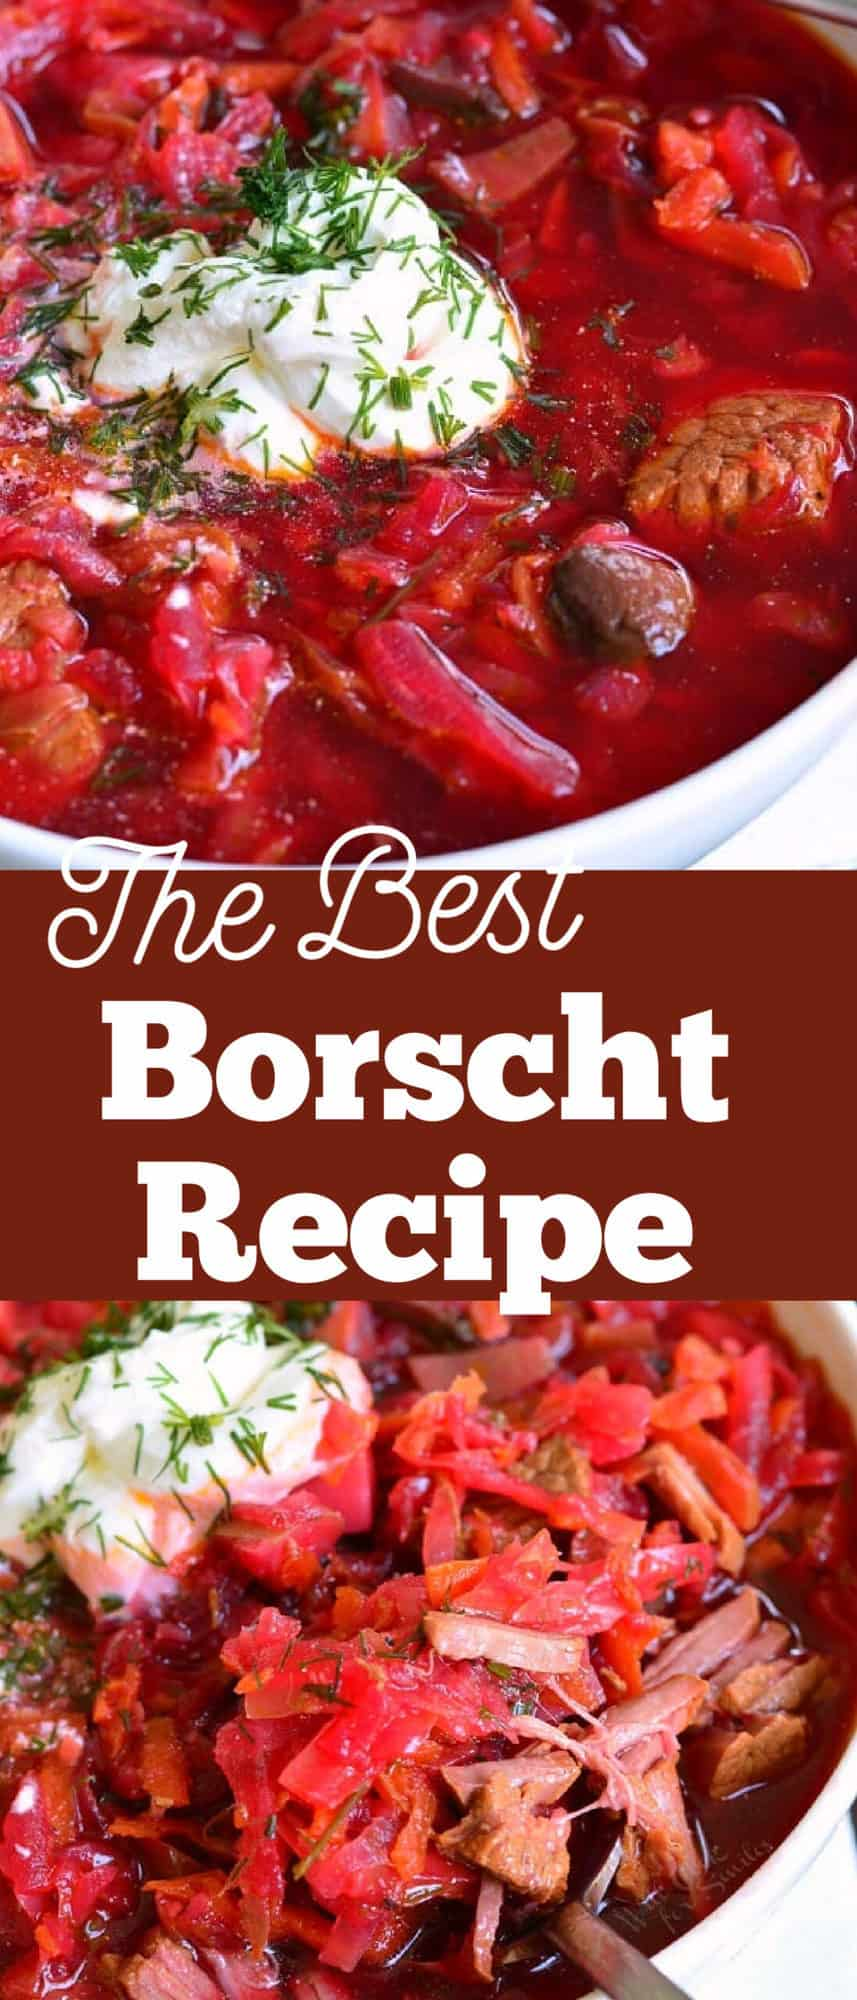 collage image of two closeups of Borscht soup in a bowl and spooning some soup